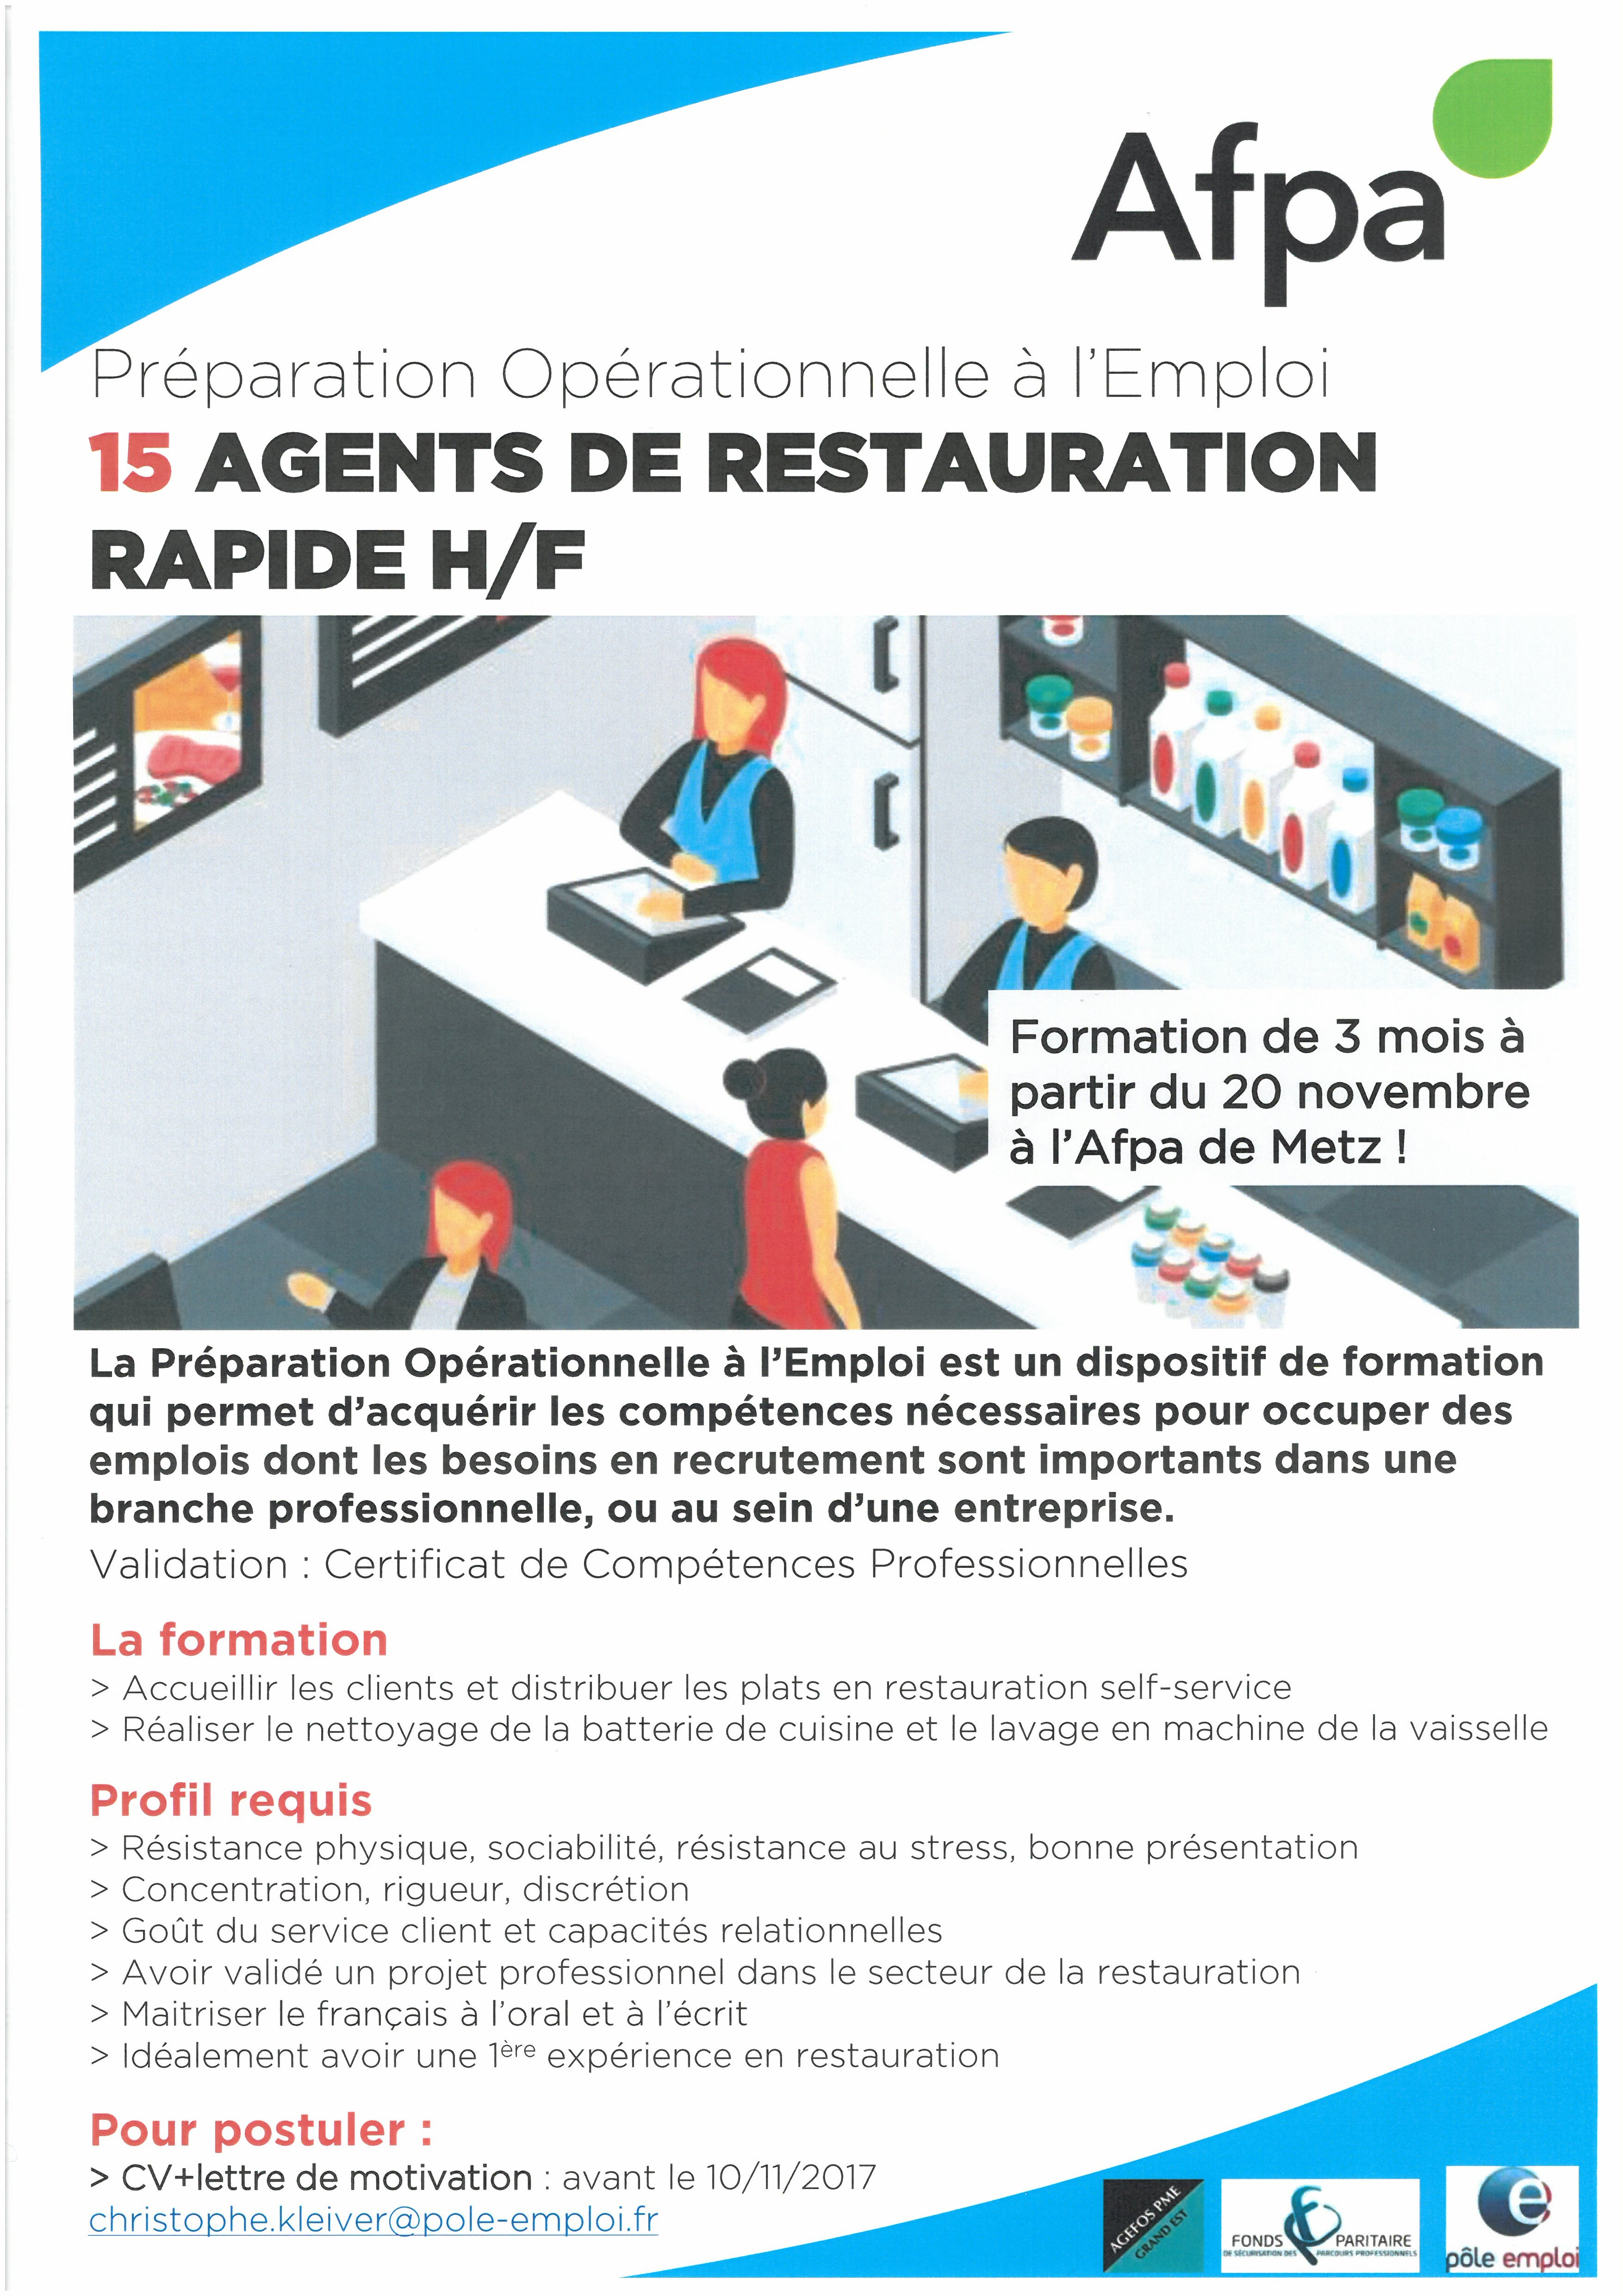 15 agents de restauration rapide H/F